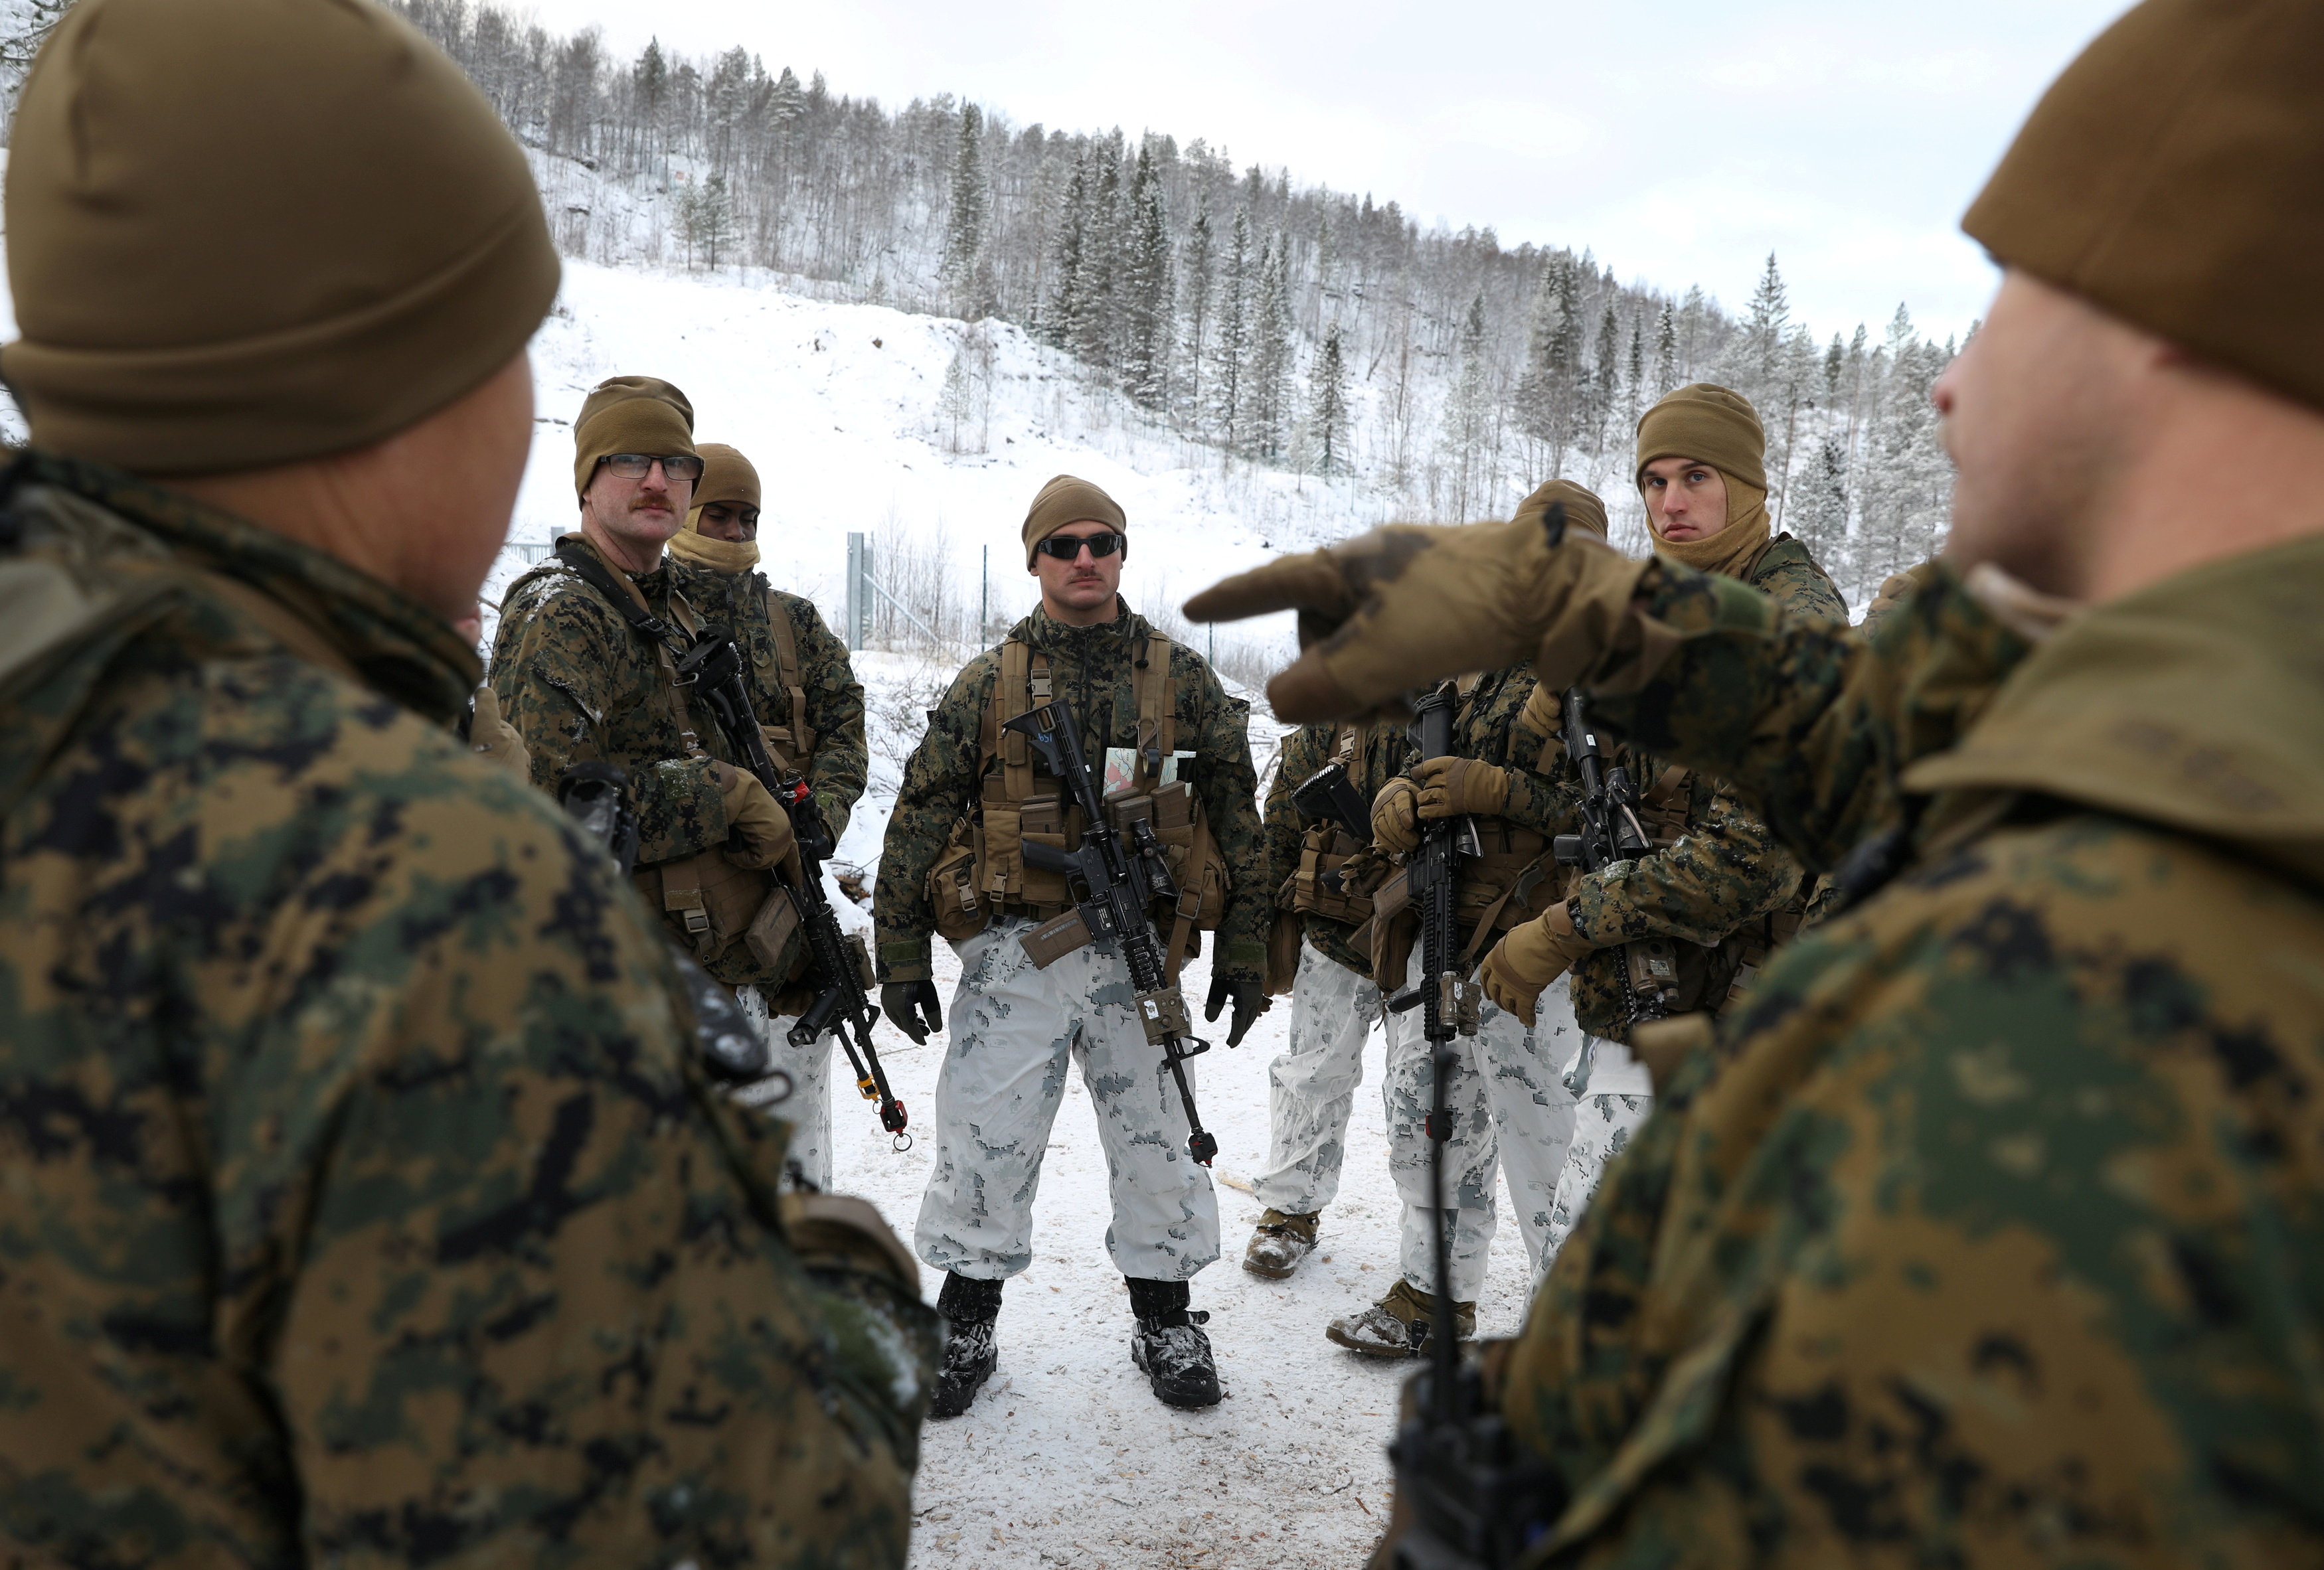 U.S. marines from Fox Company, 2nd Battalion, 6th Marine Regiment, part of Marine Rotational Force - Europe take part in